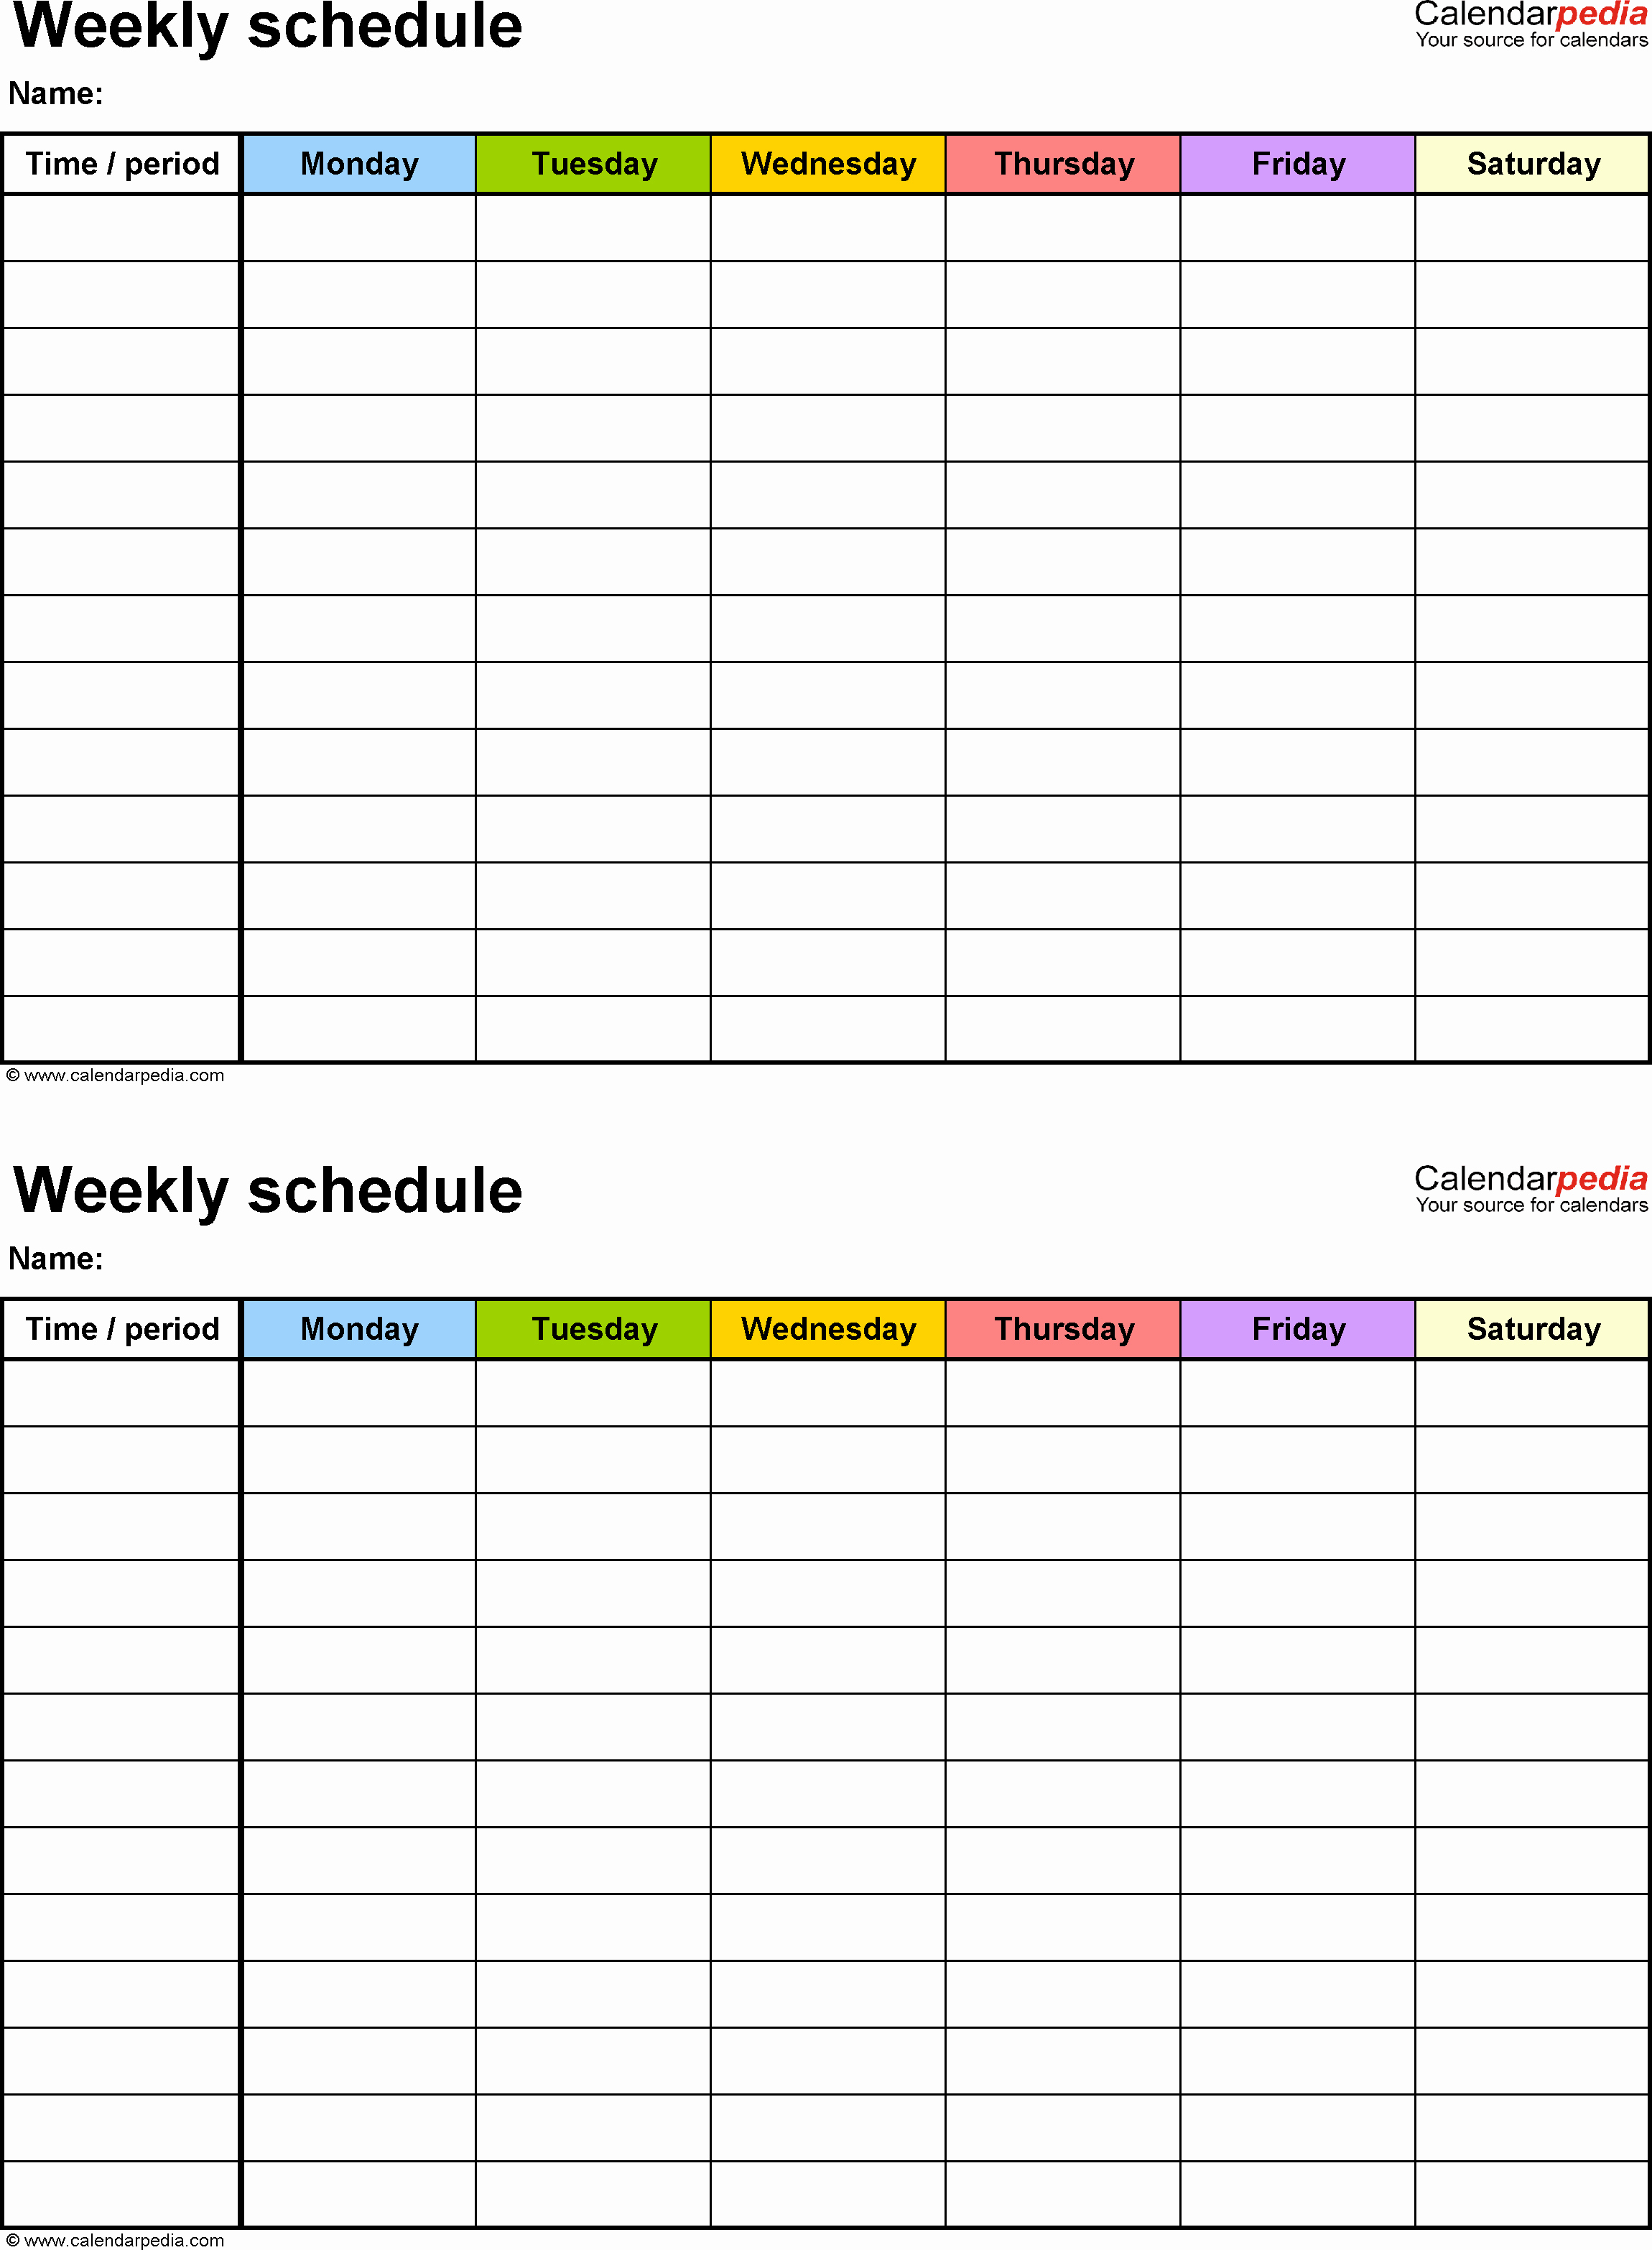 5 Day Calendar Template Word Inspirational Weekly Schedule Template for Word Version 9 2 Schedules